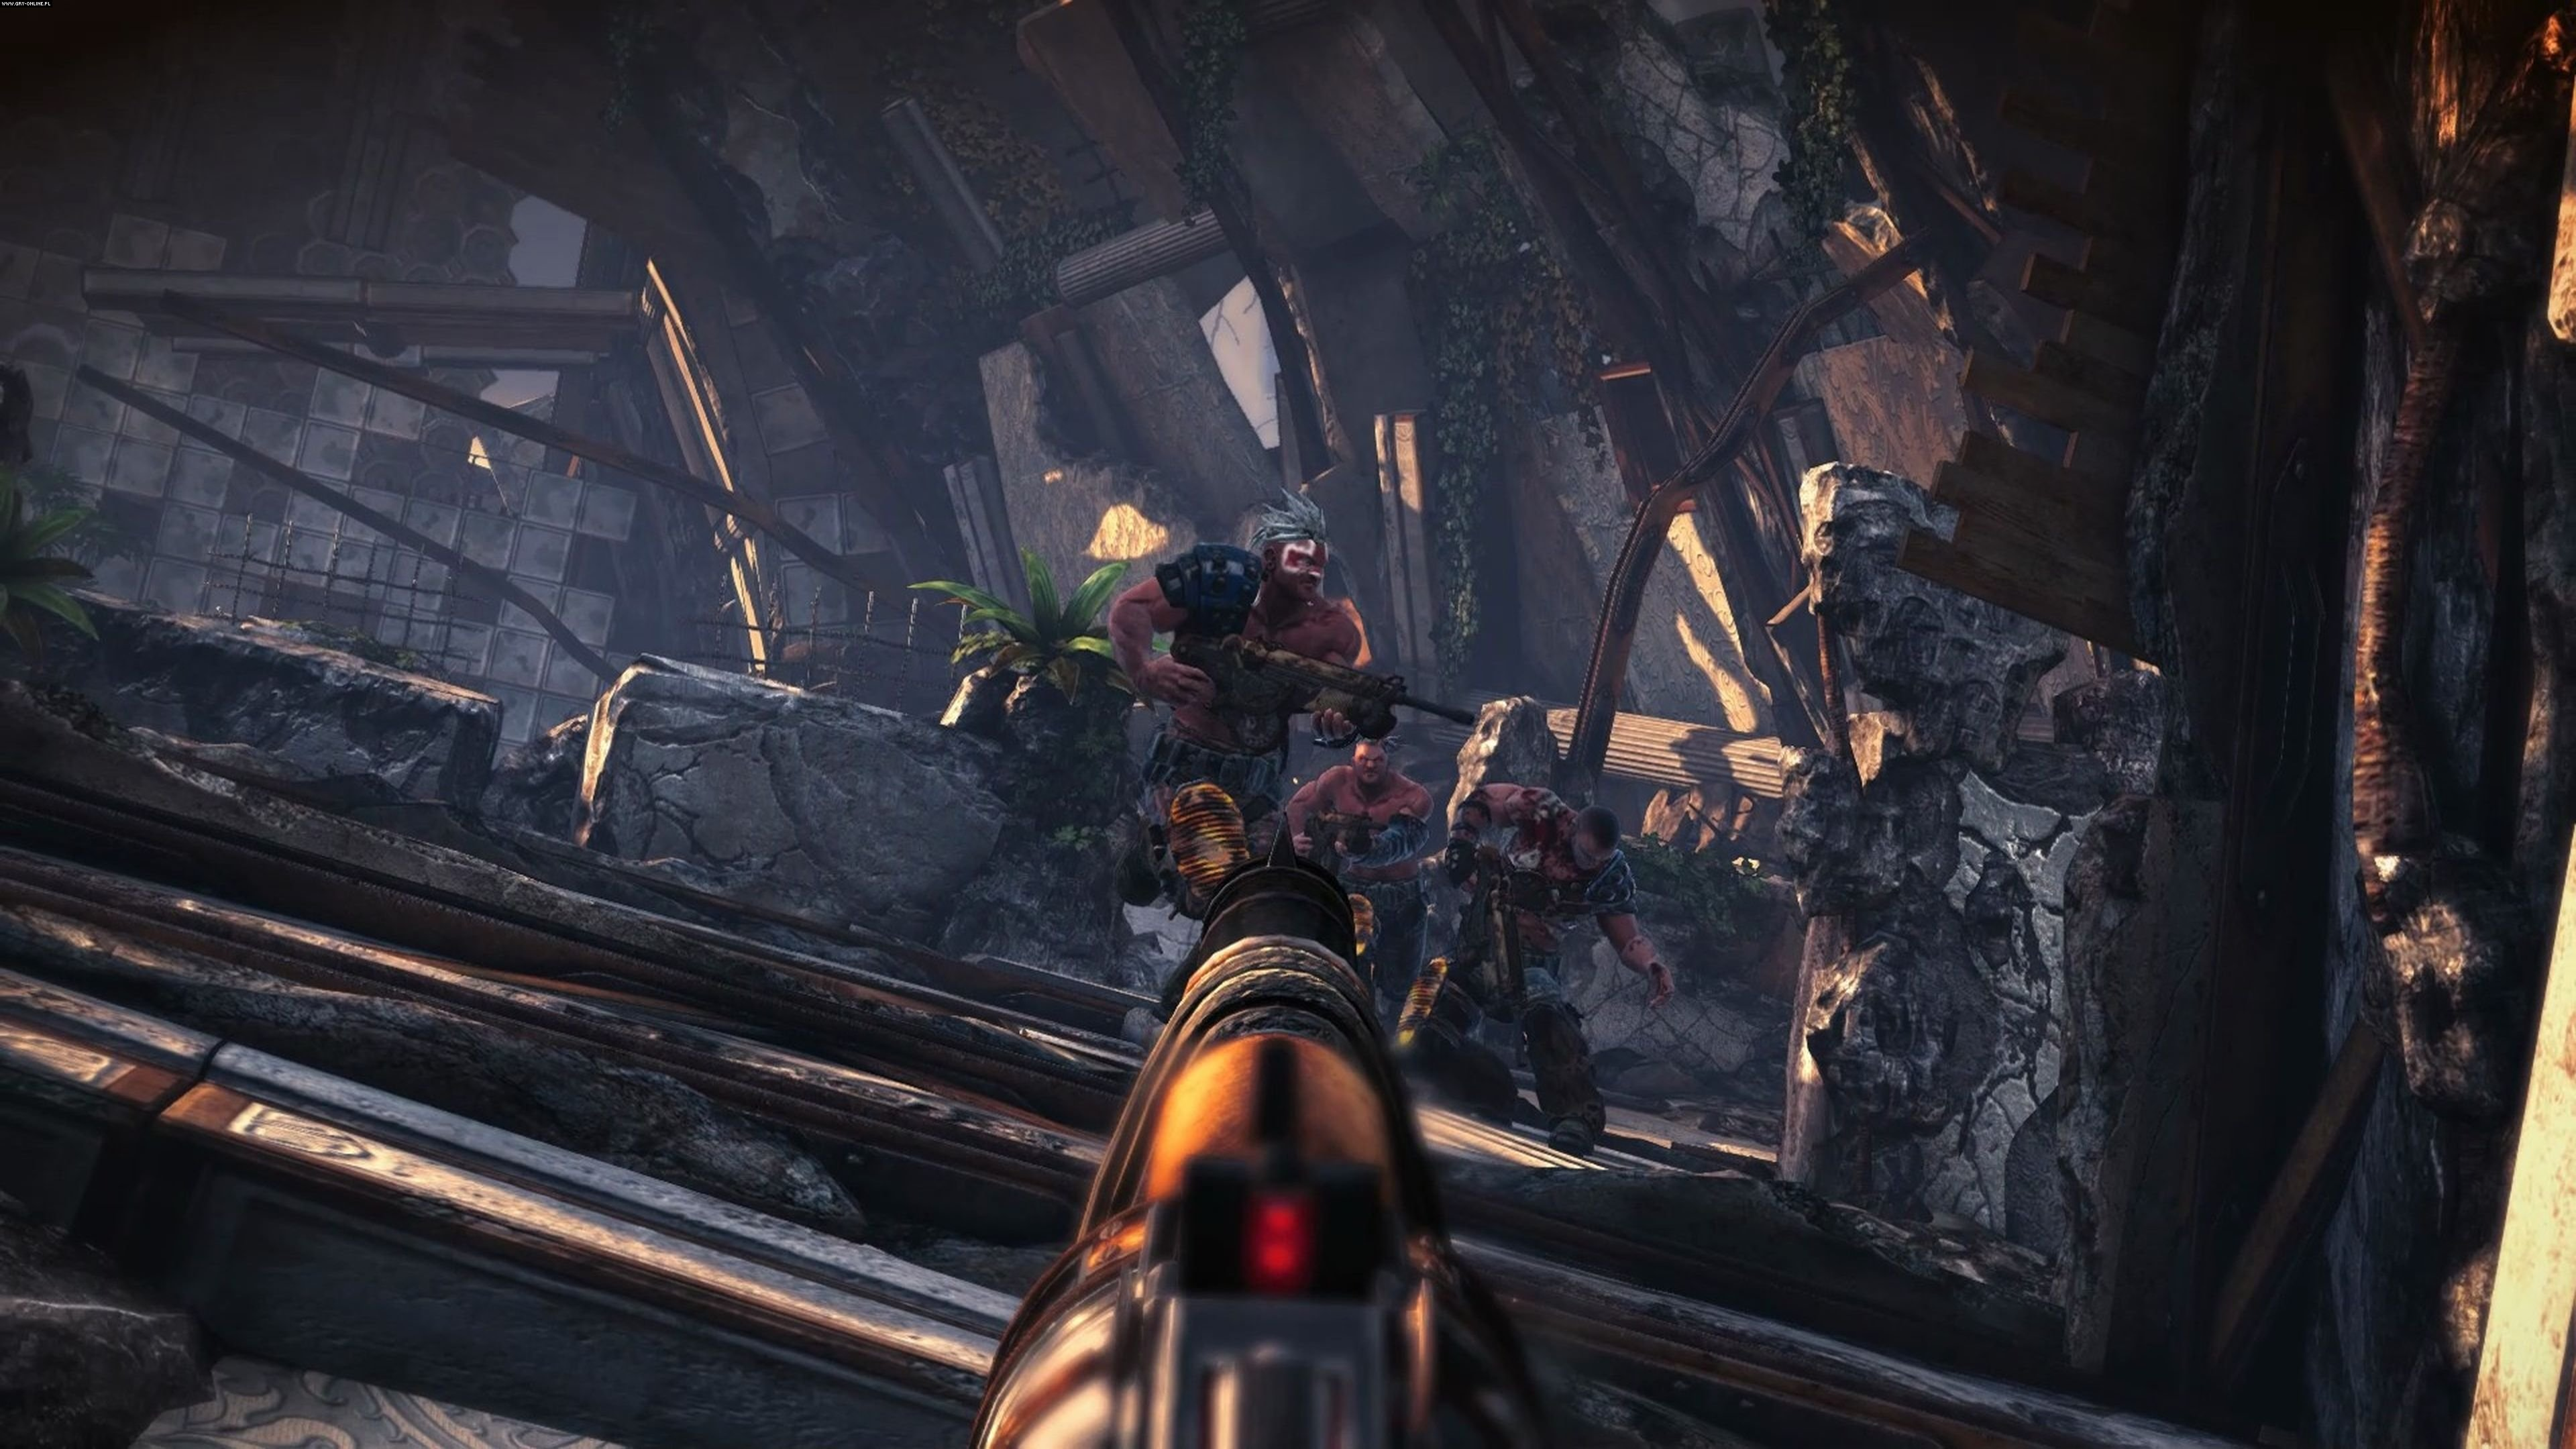 Bulletstorm: Full Clip Edition PC, PS4 Games Image 9/27, People Can Fly, Gearbox Publishing